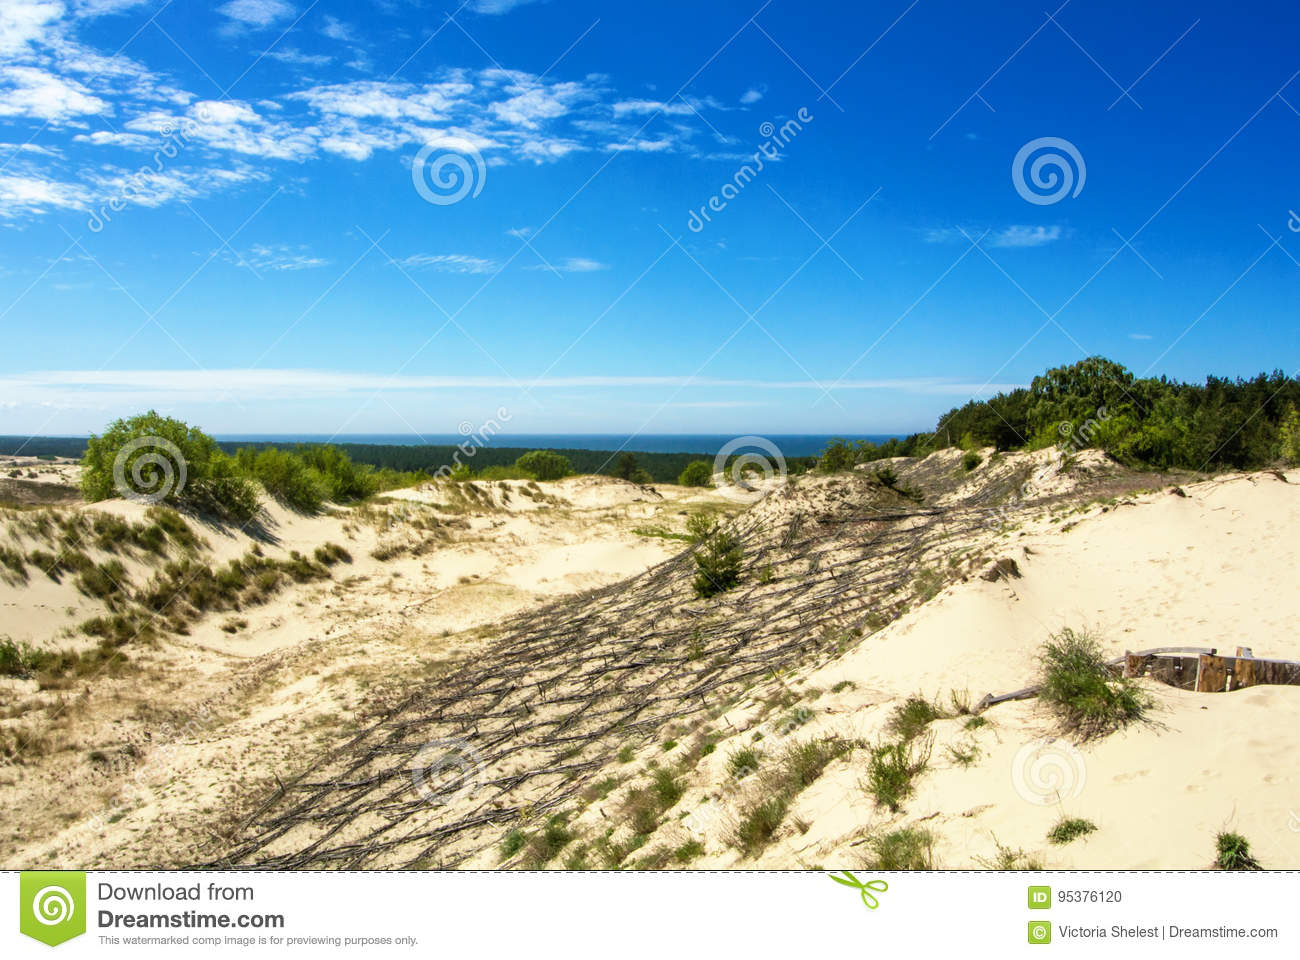 Dune protecting wooden construction over the sand at natural park of Curonian Spit